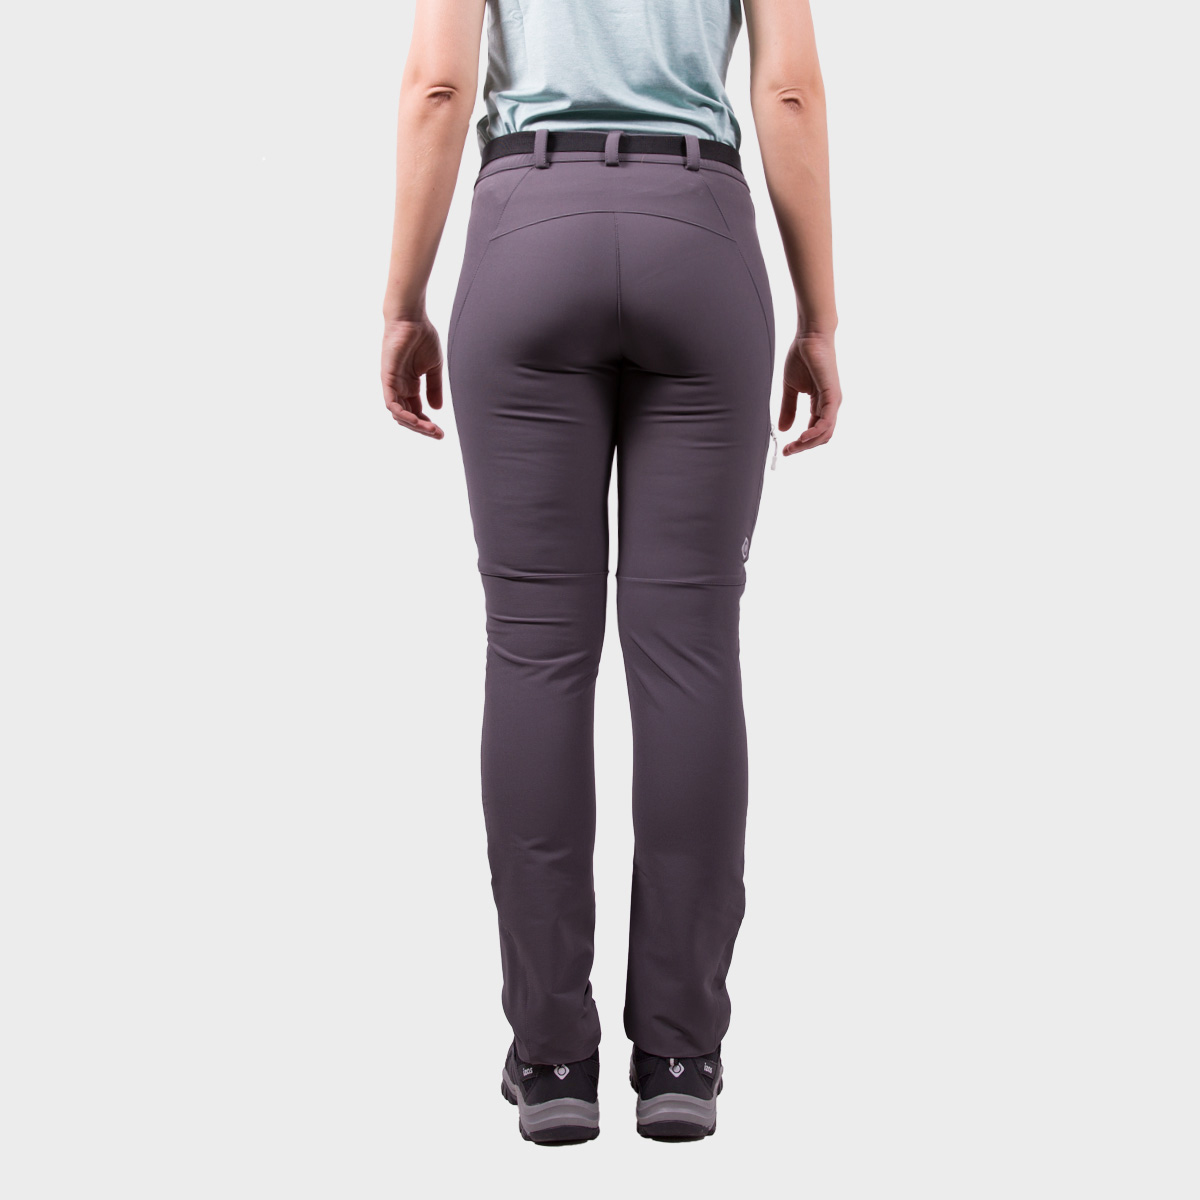 WOMAN'S ELAT STRETCH PANT GREY